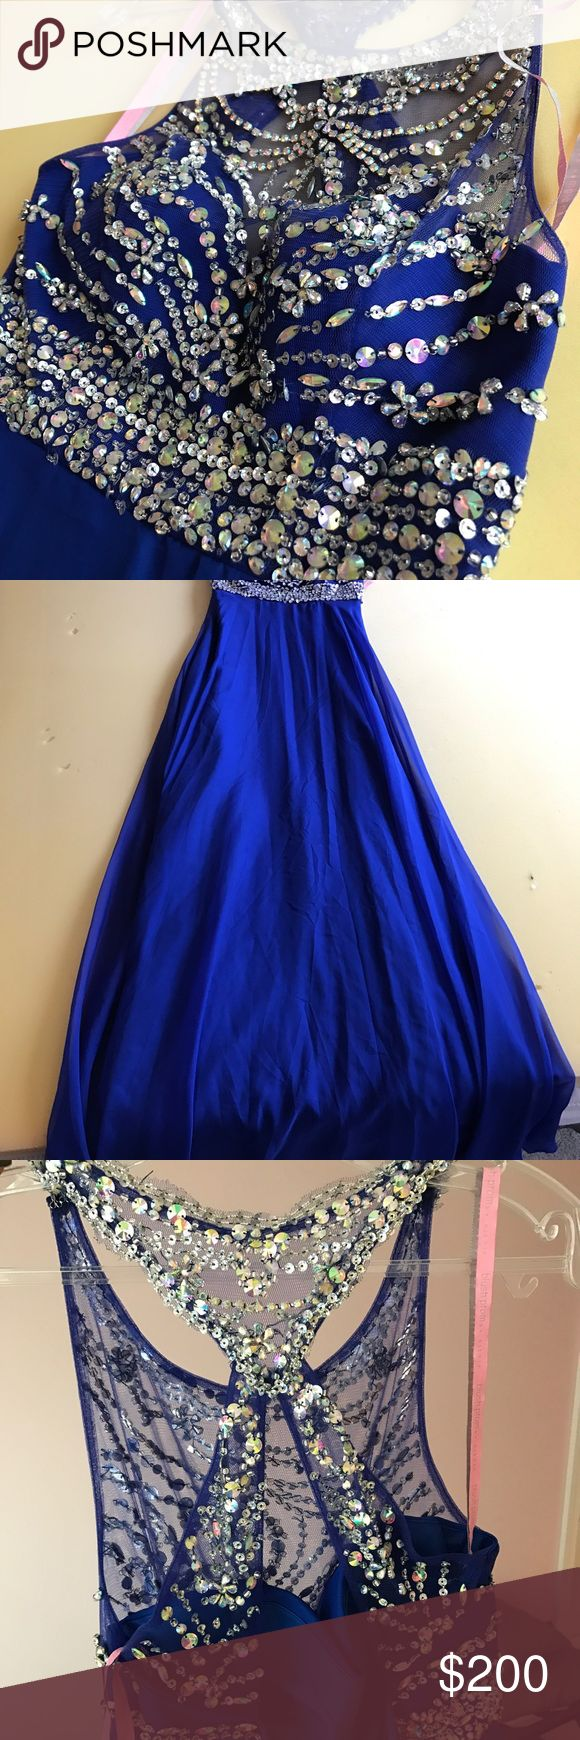 Royal Blue Prom Dress Royal blue and gorgeously beaded prom gown. Iridescent gems with a racer/open back. Empire waistline with a long flowing skirt. No damage and NEVER worn. ❤️ Blush Dresses Prom